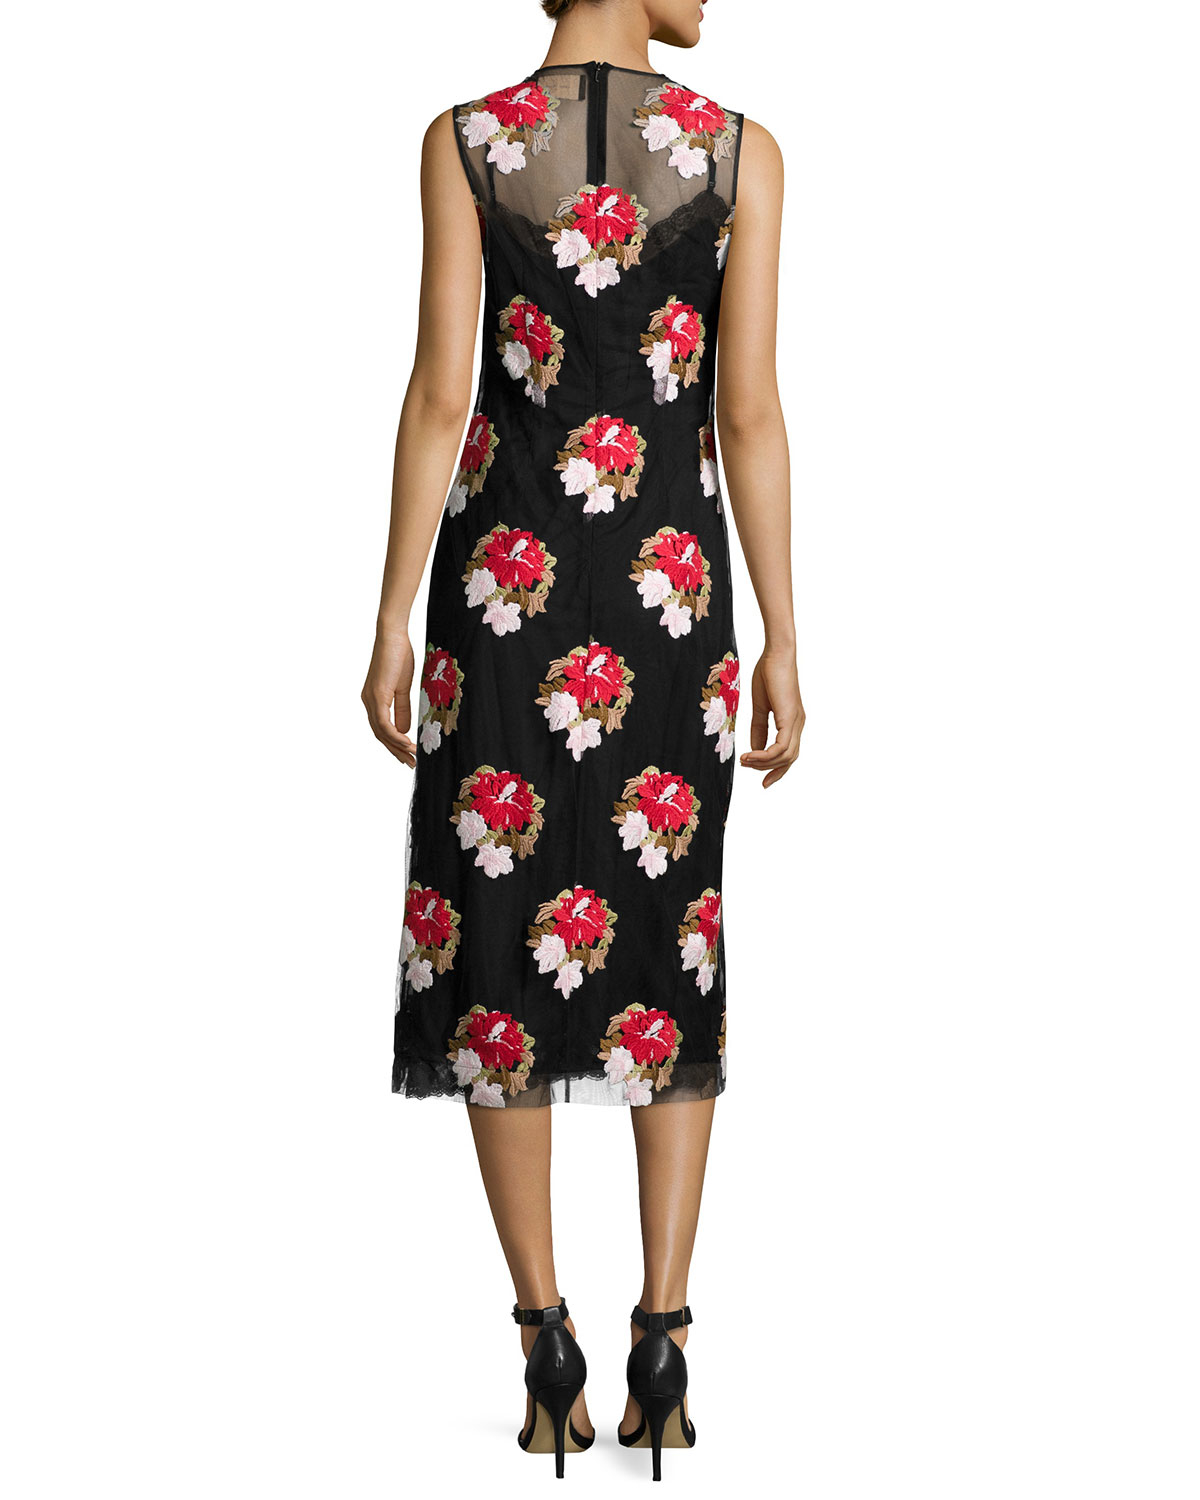 Simone rocha floral embroidered sleeveless pencil dress lyst